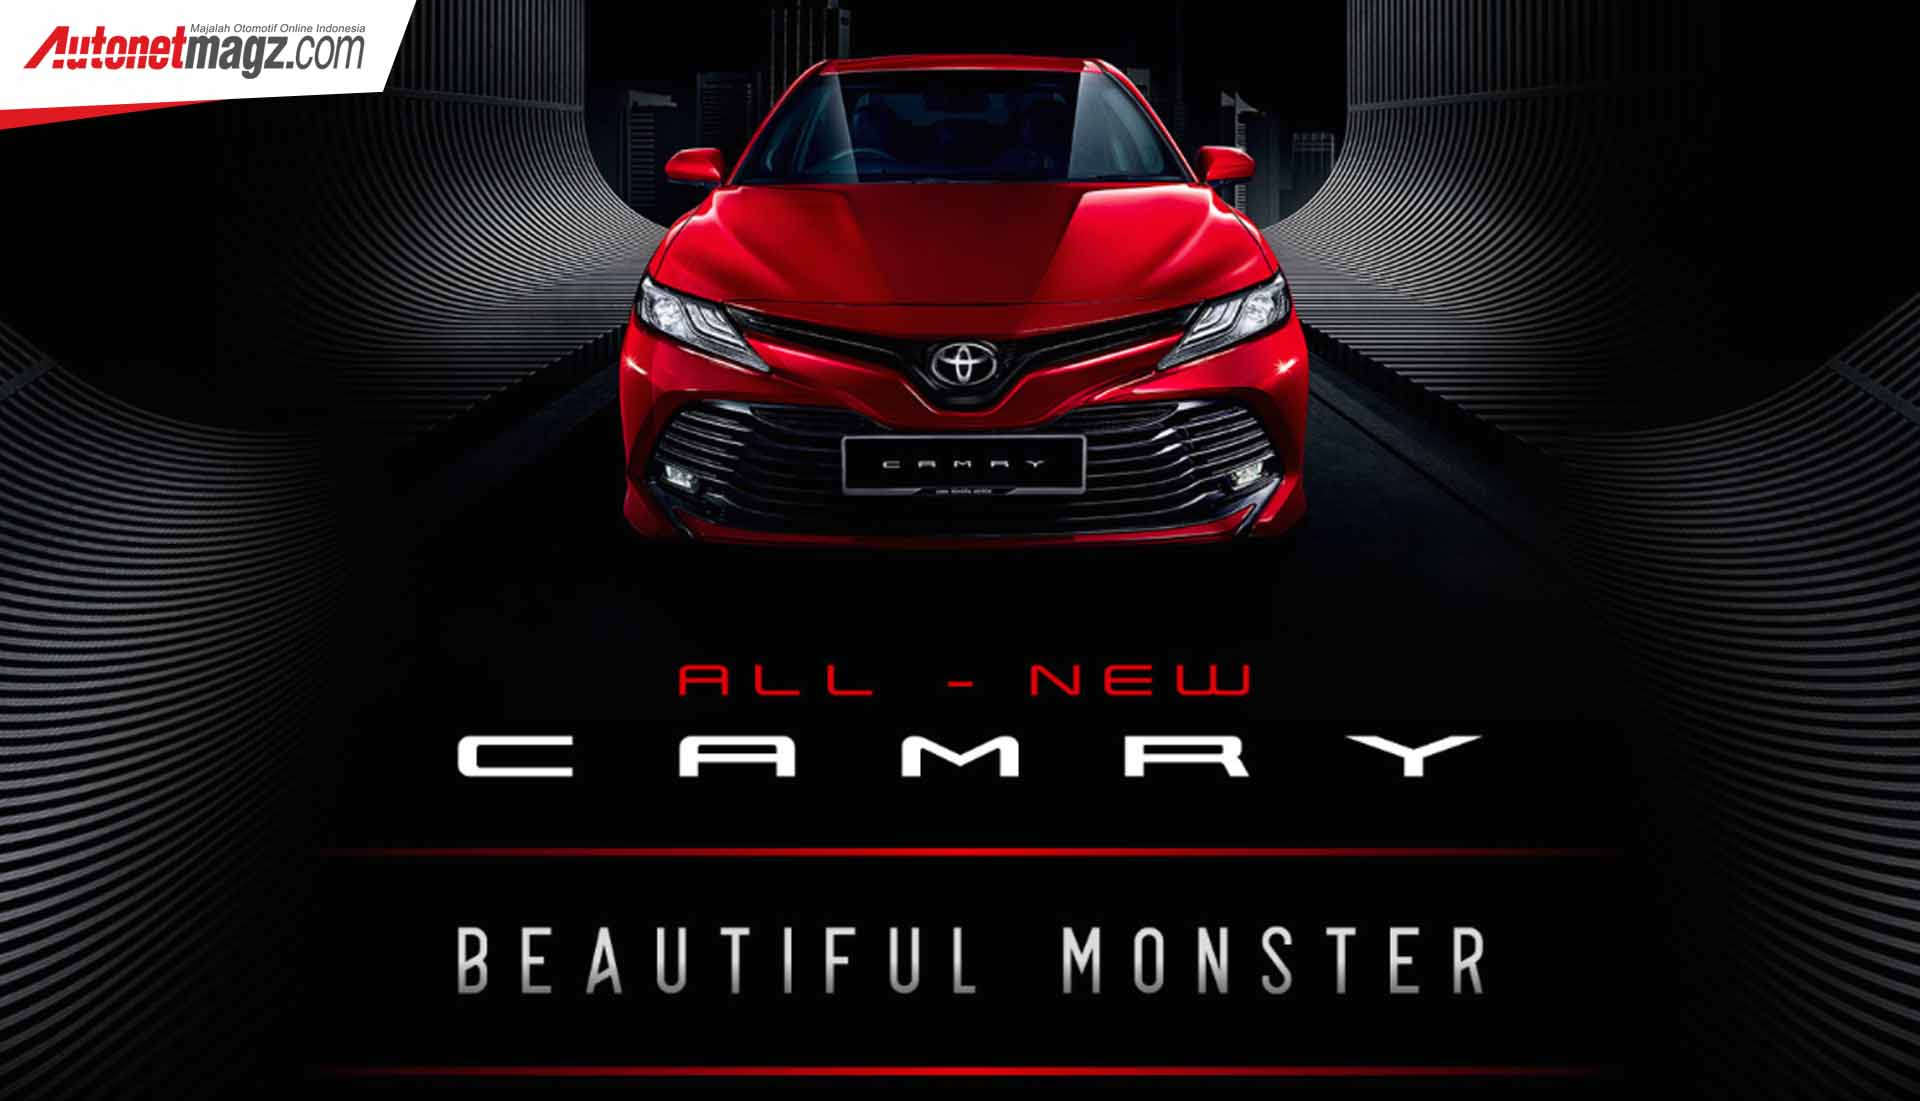 all new toyota camry harga oli grand avanza malaysia  autonetmagz review